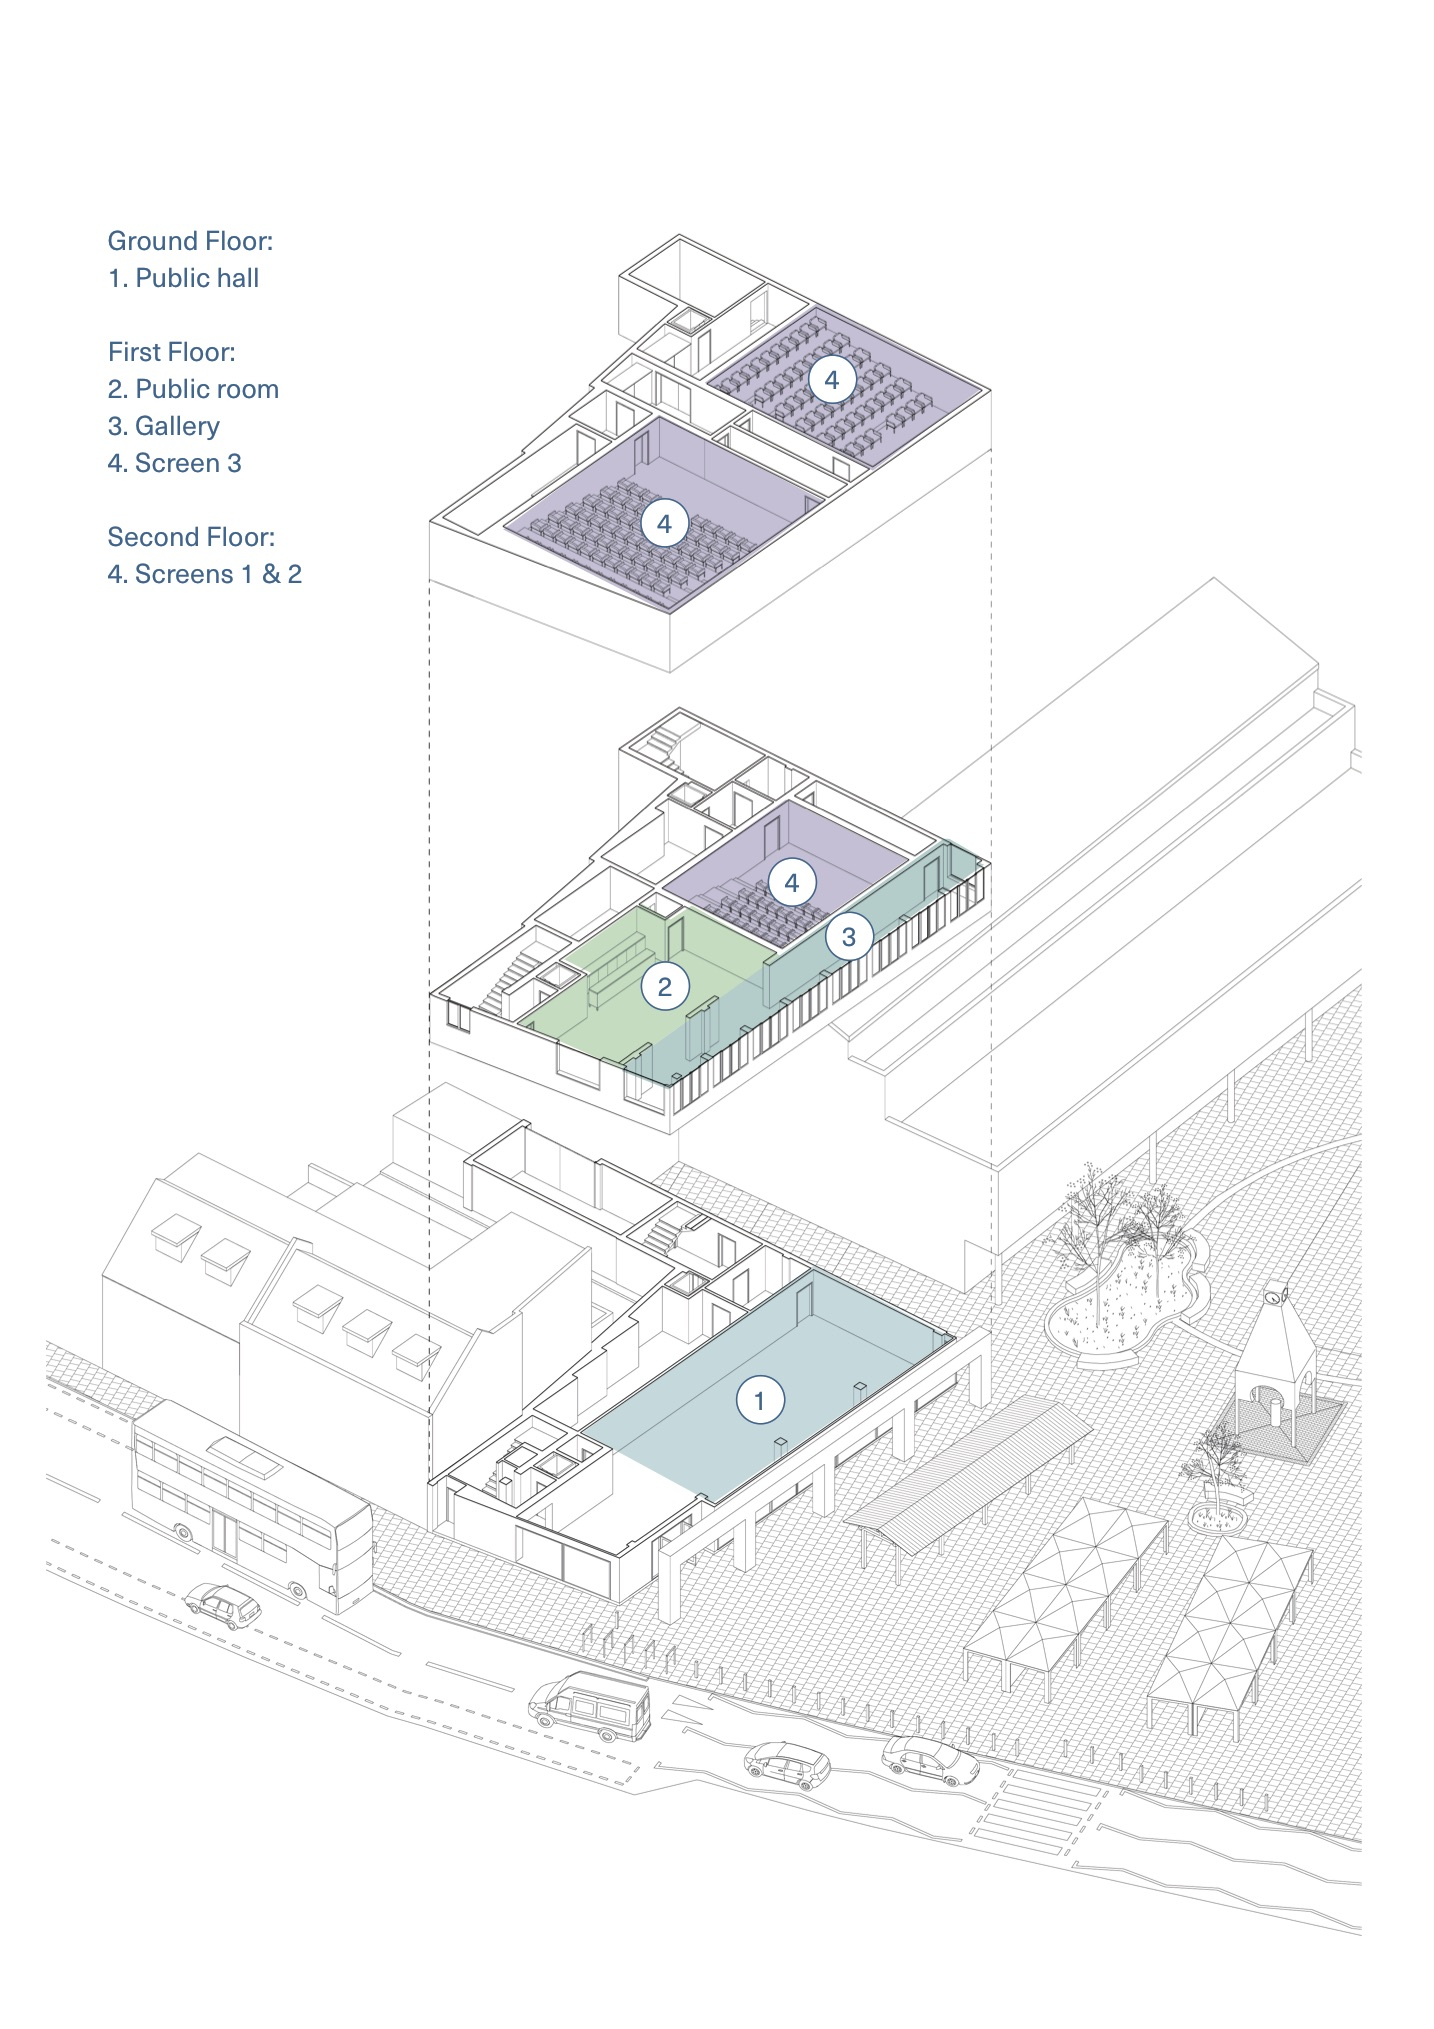 &gt;&gt; Scroll down to start the survey &lt;&lt;<br><br>Architect's drawing showing the proposal for the new arts and cultural space in the former Thorowgoods furniture store.<br><br>